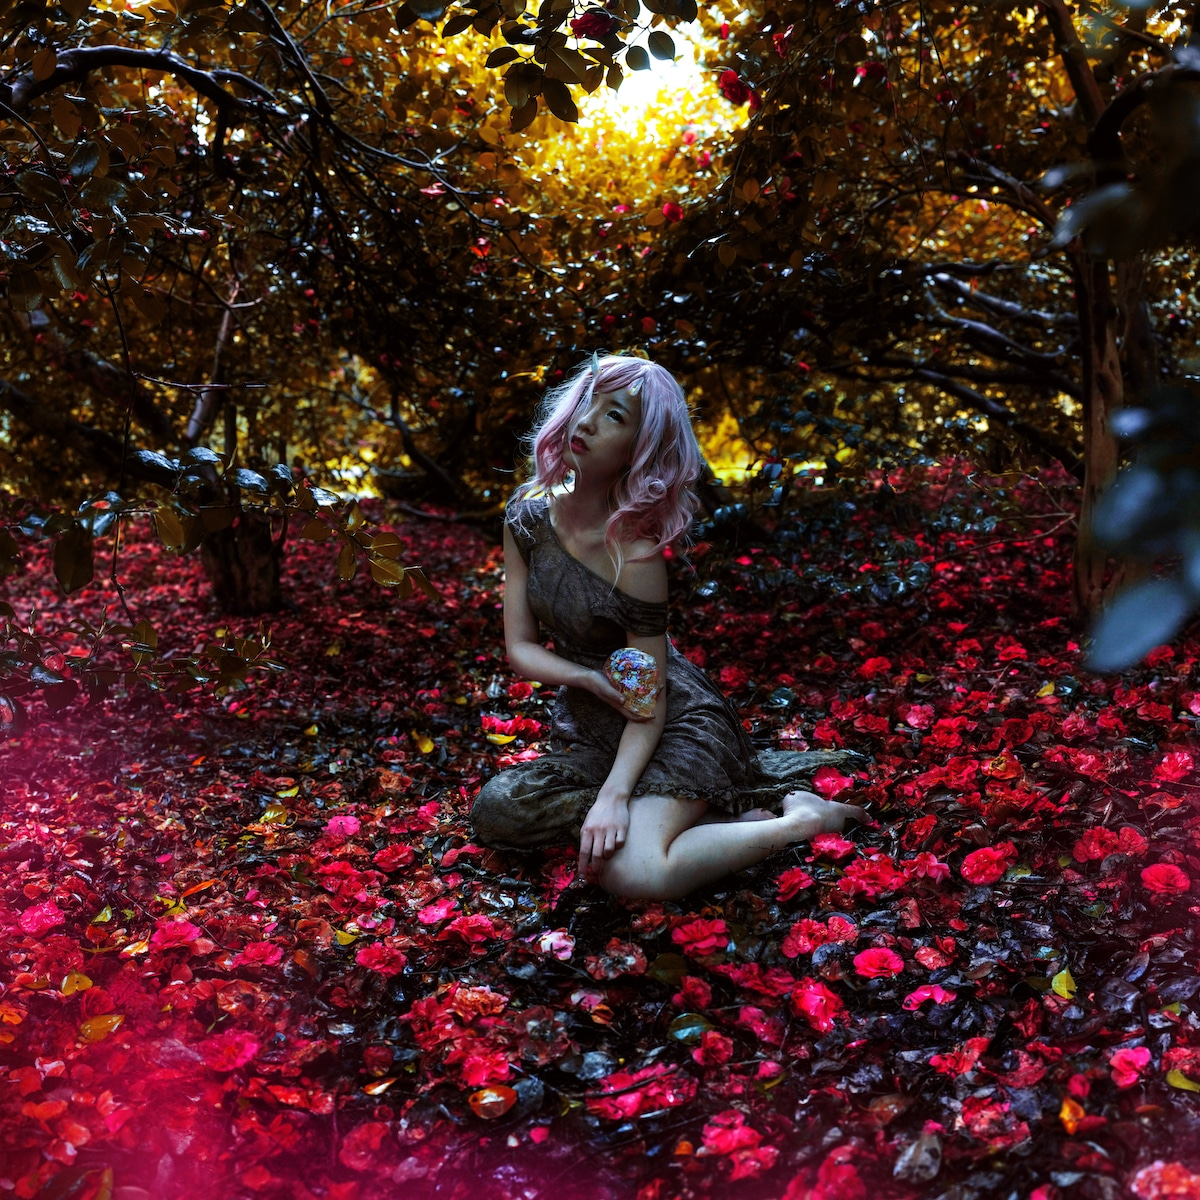 Surreal Photography by Kindra Nikole